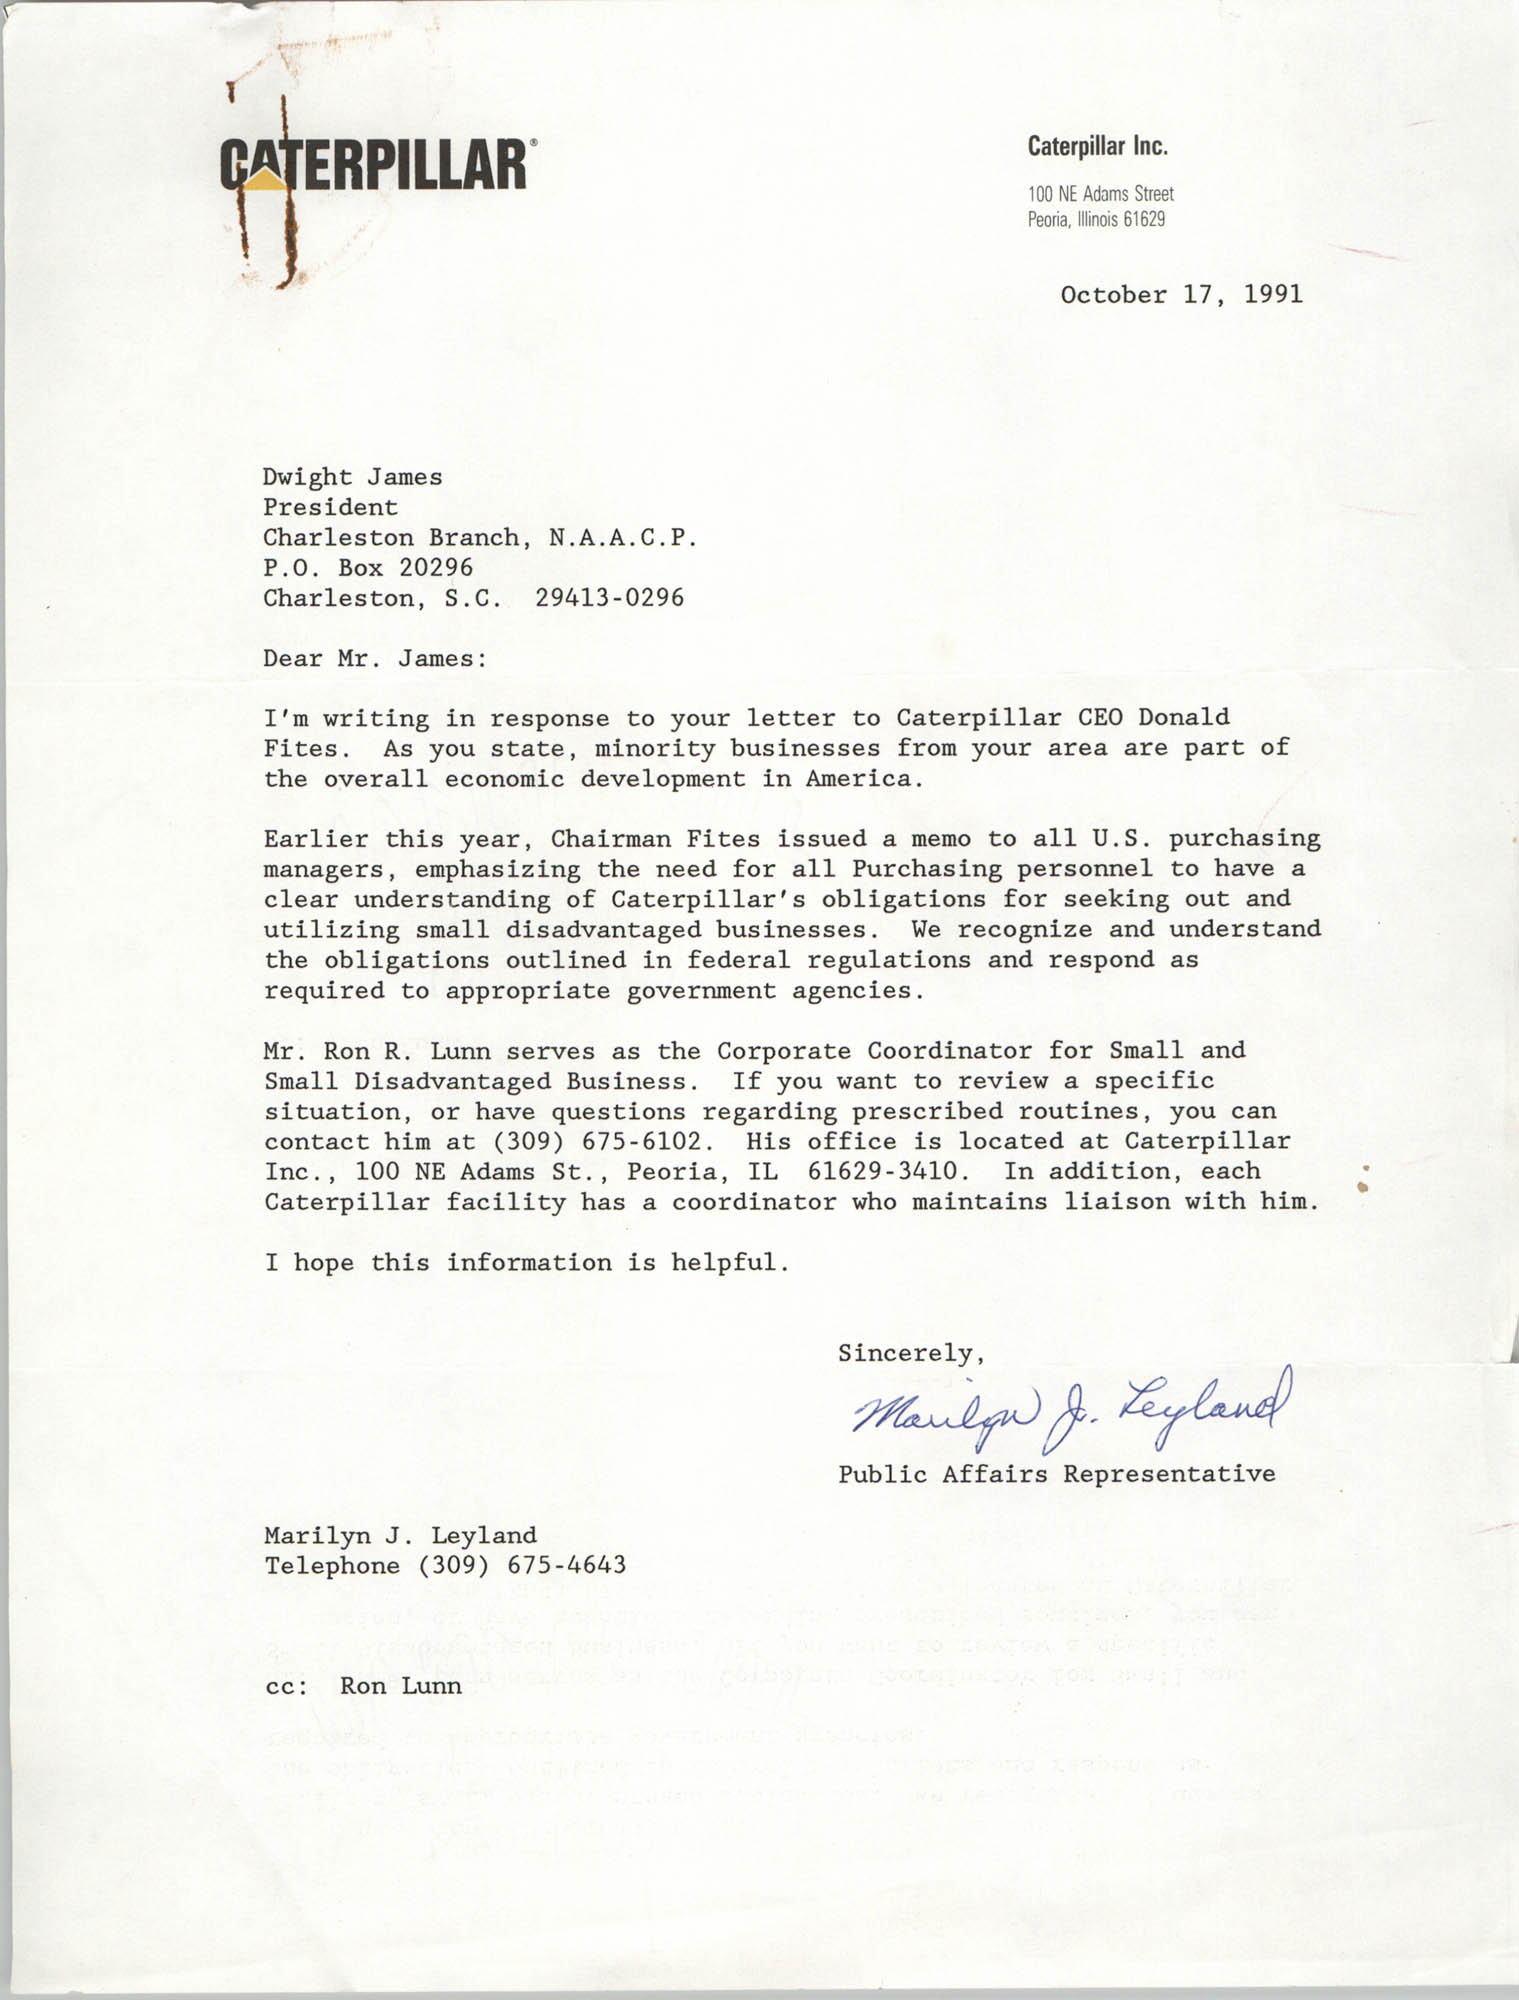 Letter from Marilyn J. Leyland to Dwight James, October 17, 1991